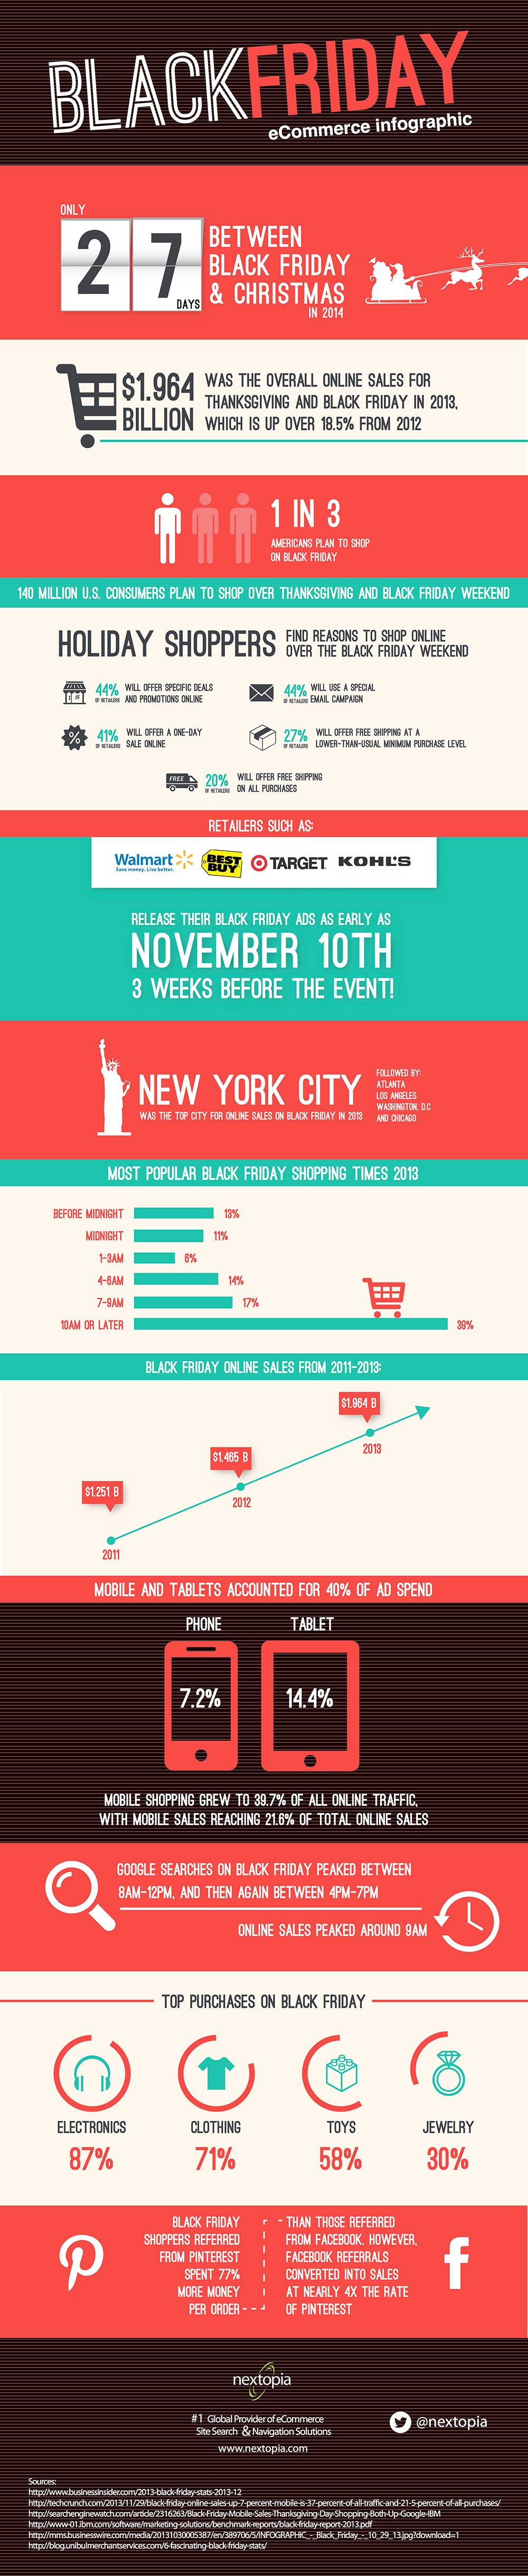 black-friday-ecommerce-stats